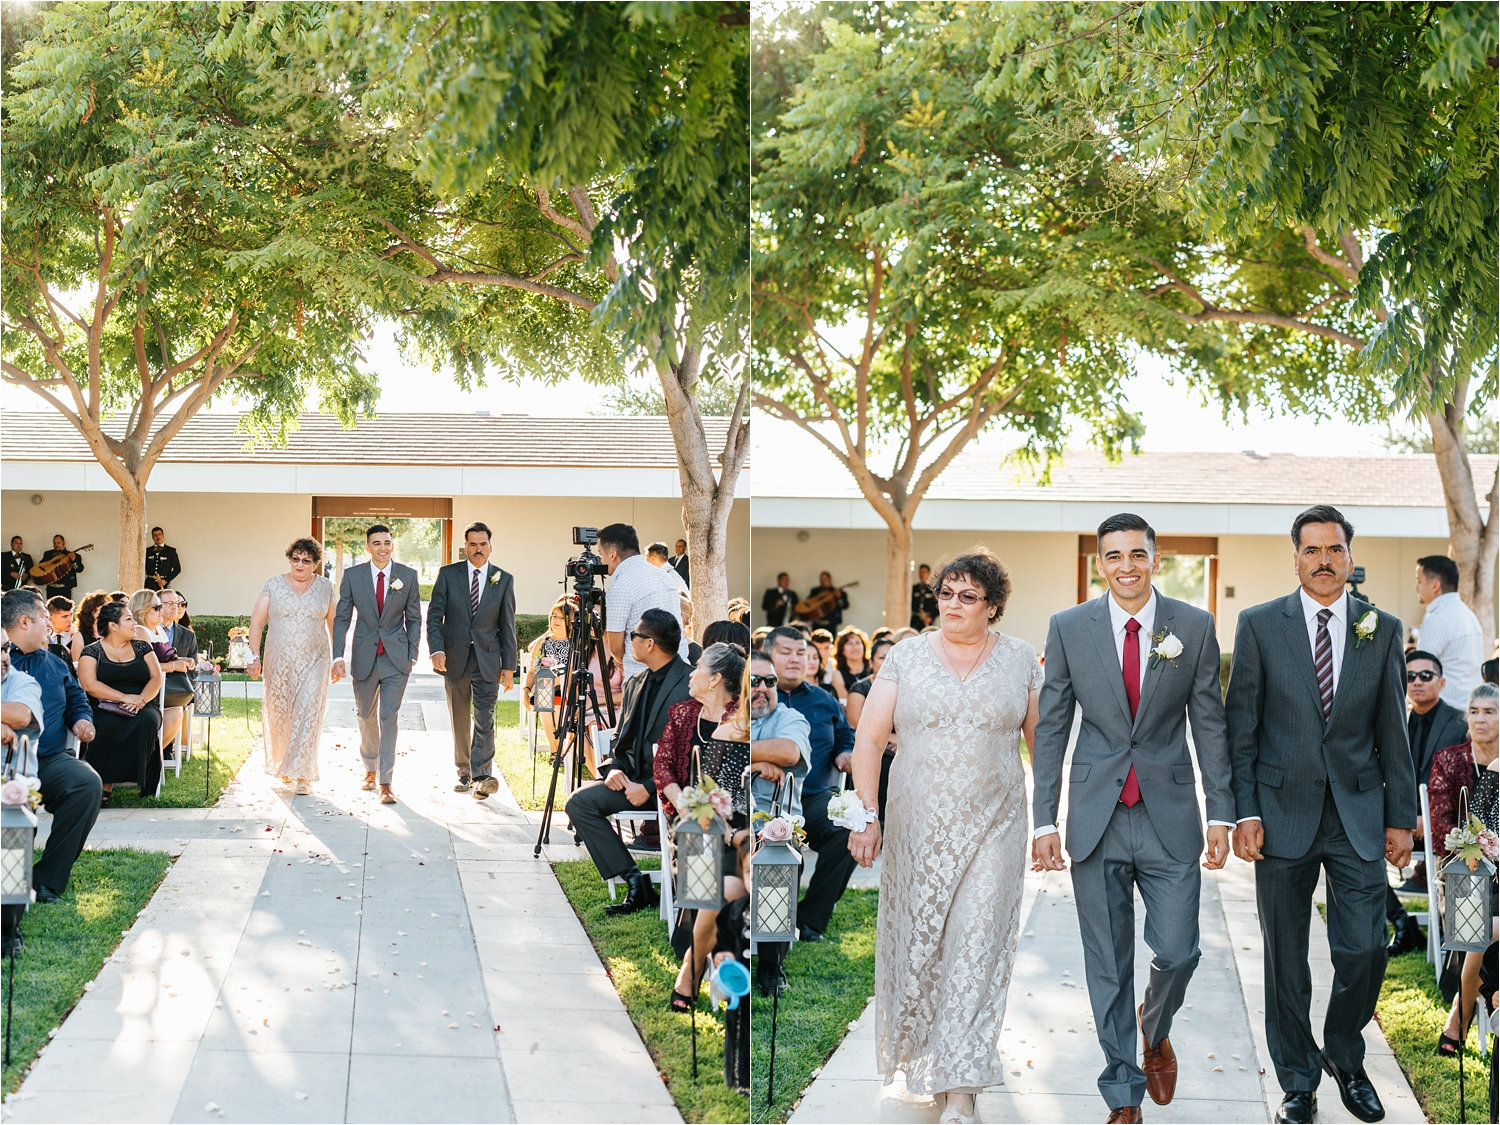 Groom walking down the aisle in wedding ceremony - https://brittneyhannonphotography.com